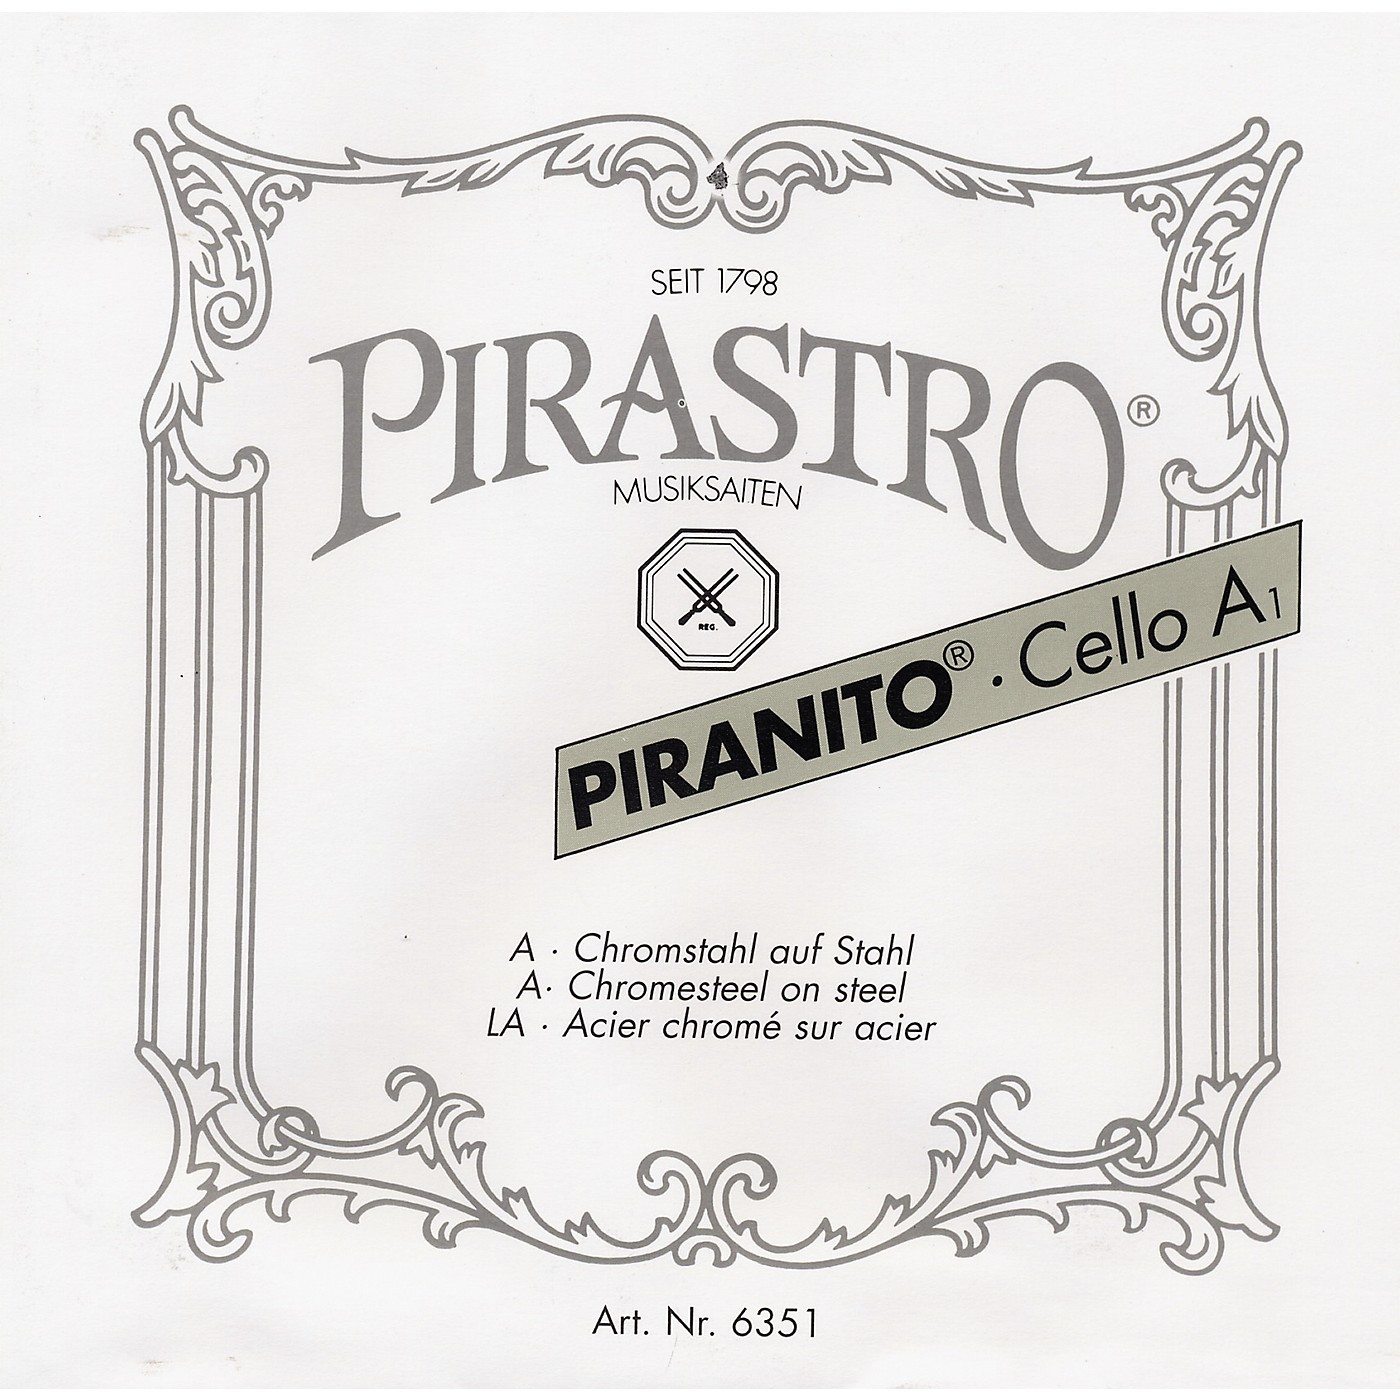 Pirastro Piranito Series Cello D String thumbnail